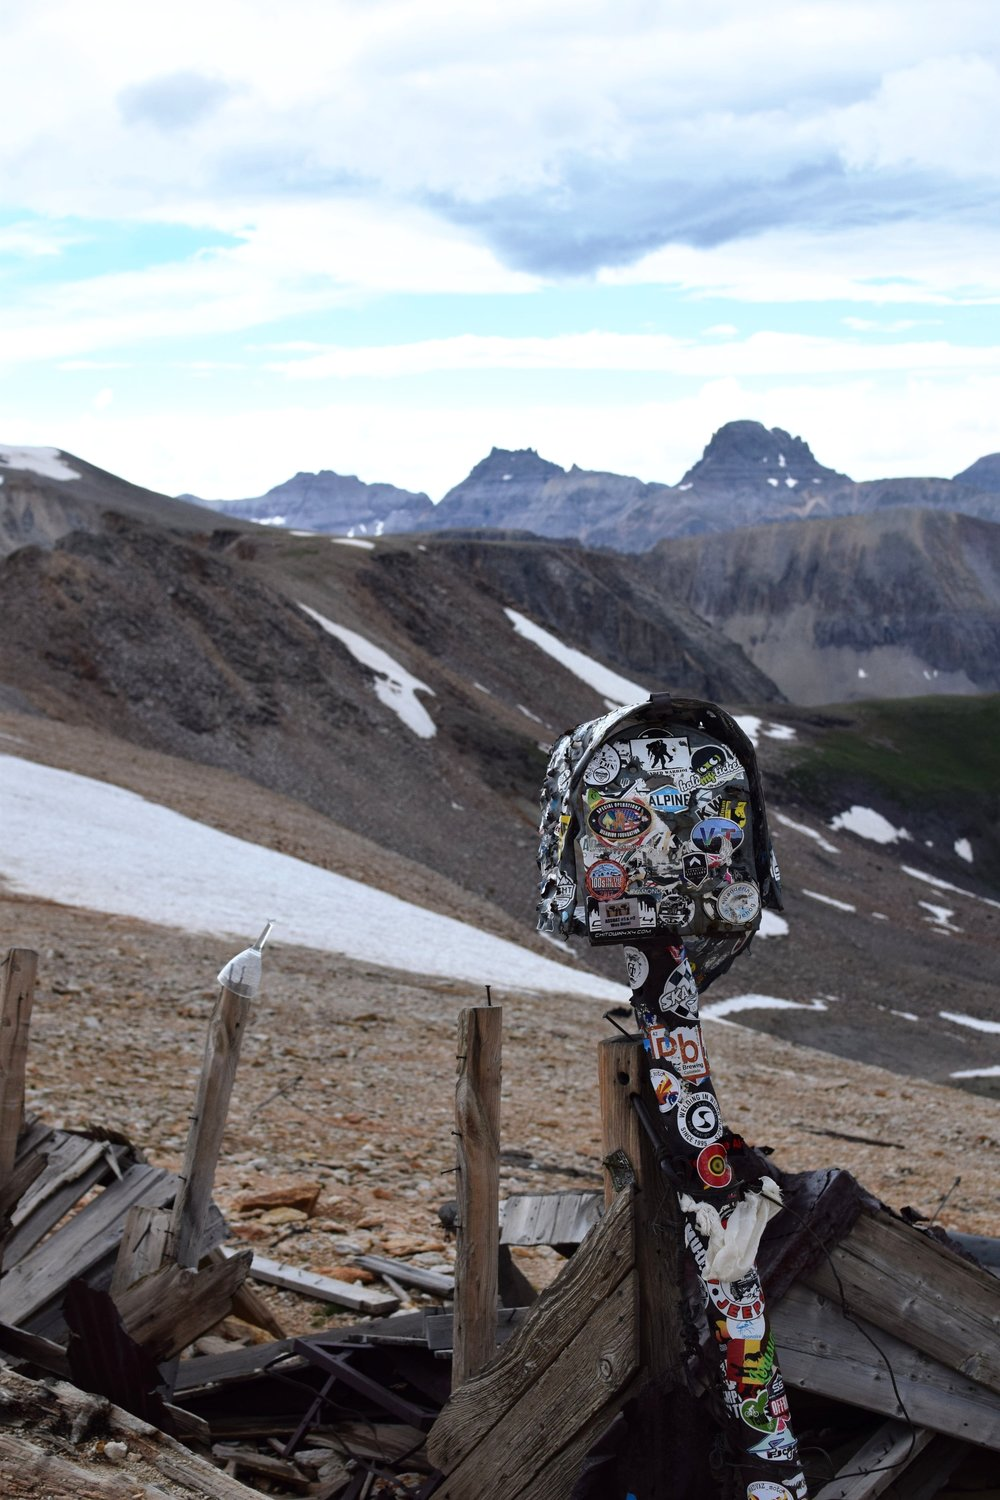 Sticker-covered mailbox at the top of Imogene Pass, 13k feet.